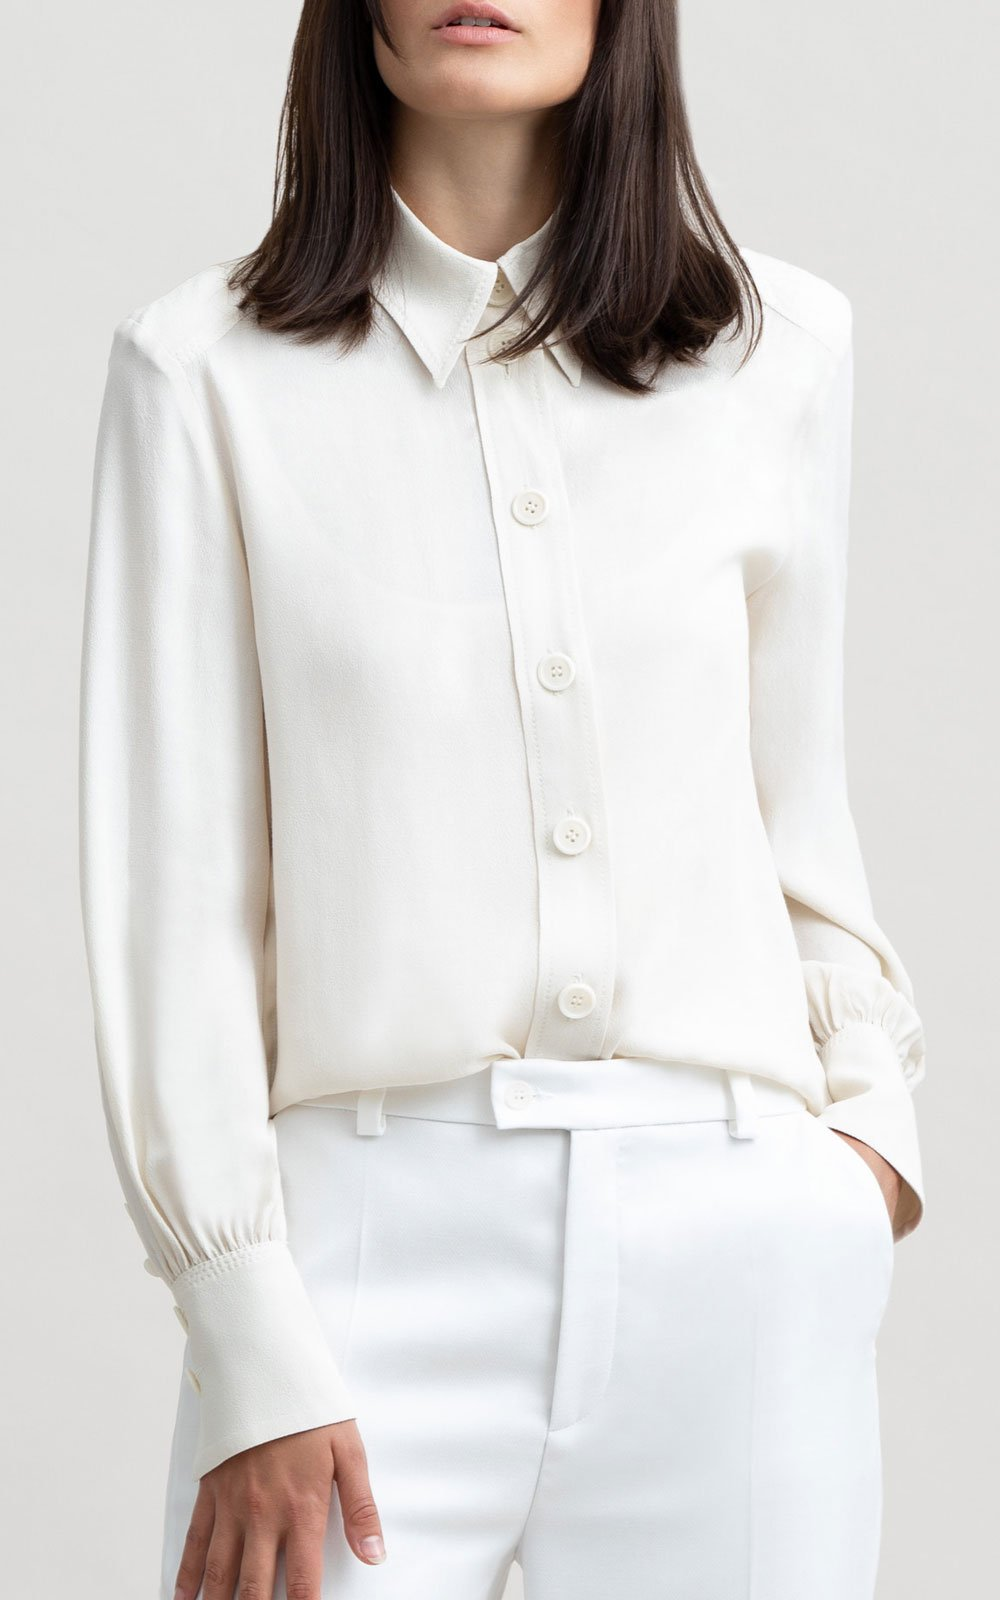 Athos design blouse off white